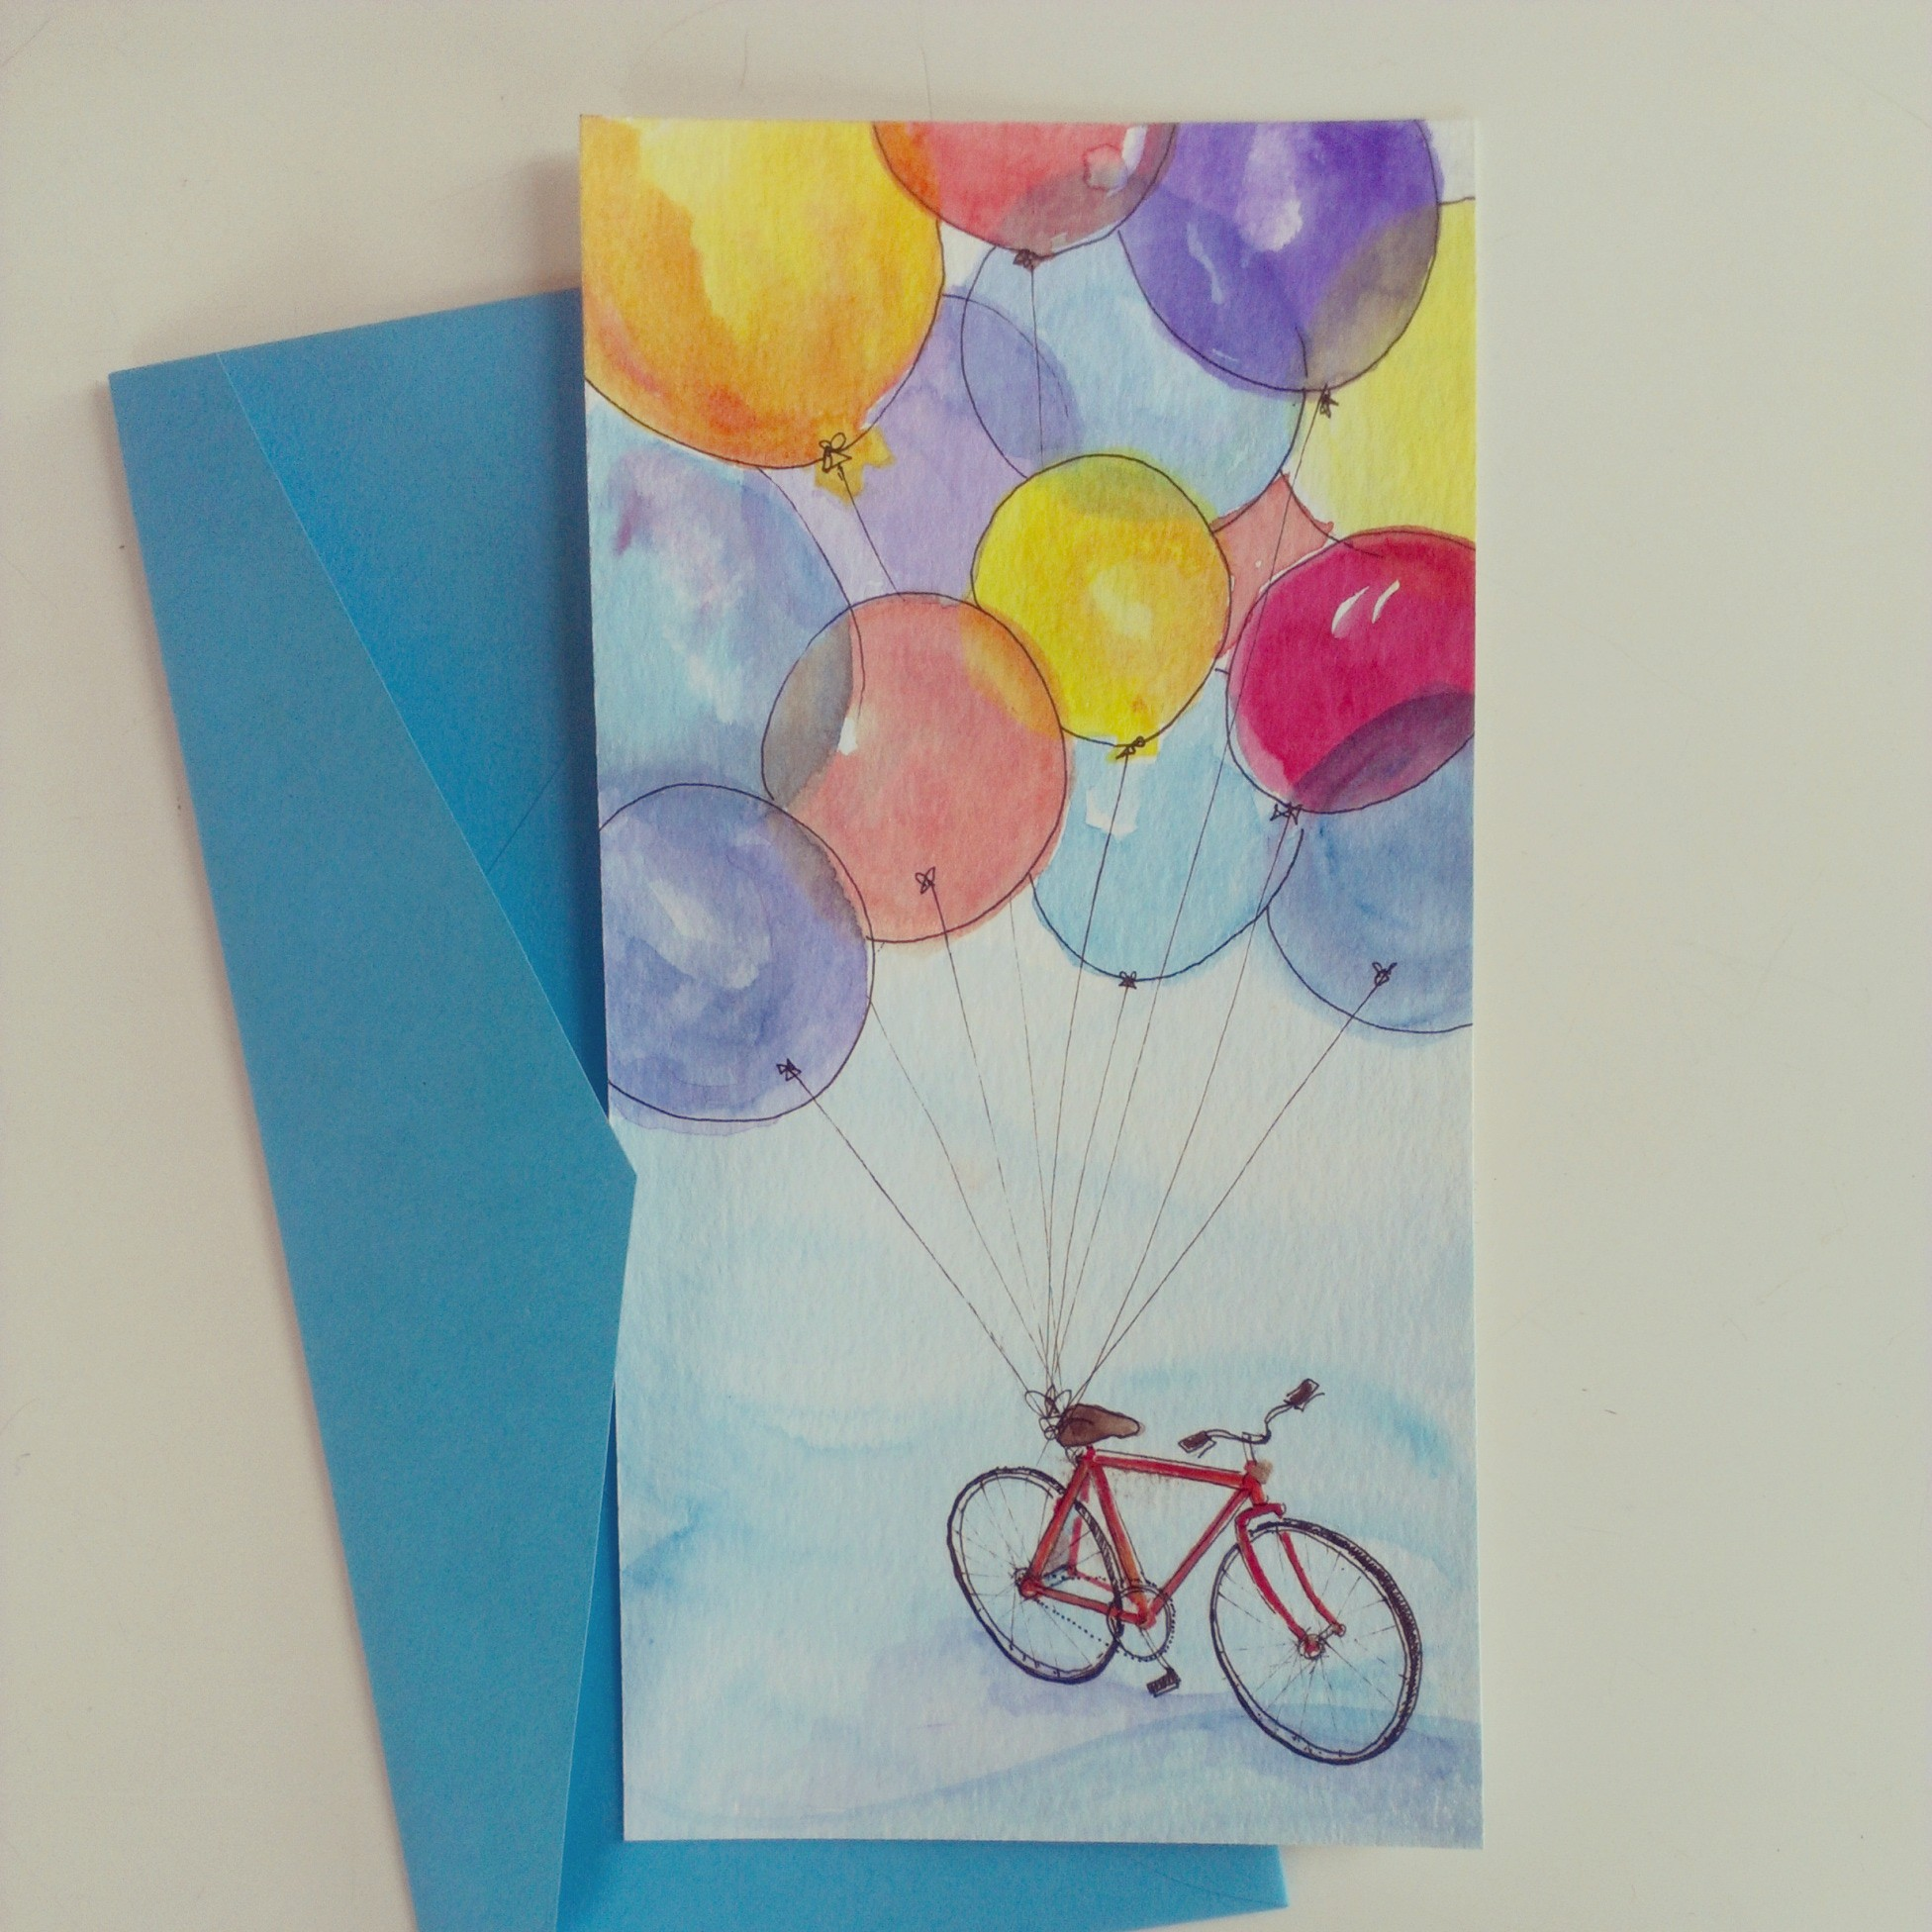 Bicycle and Balloons